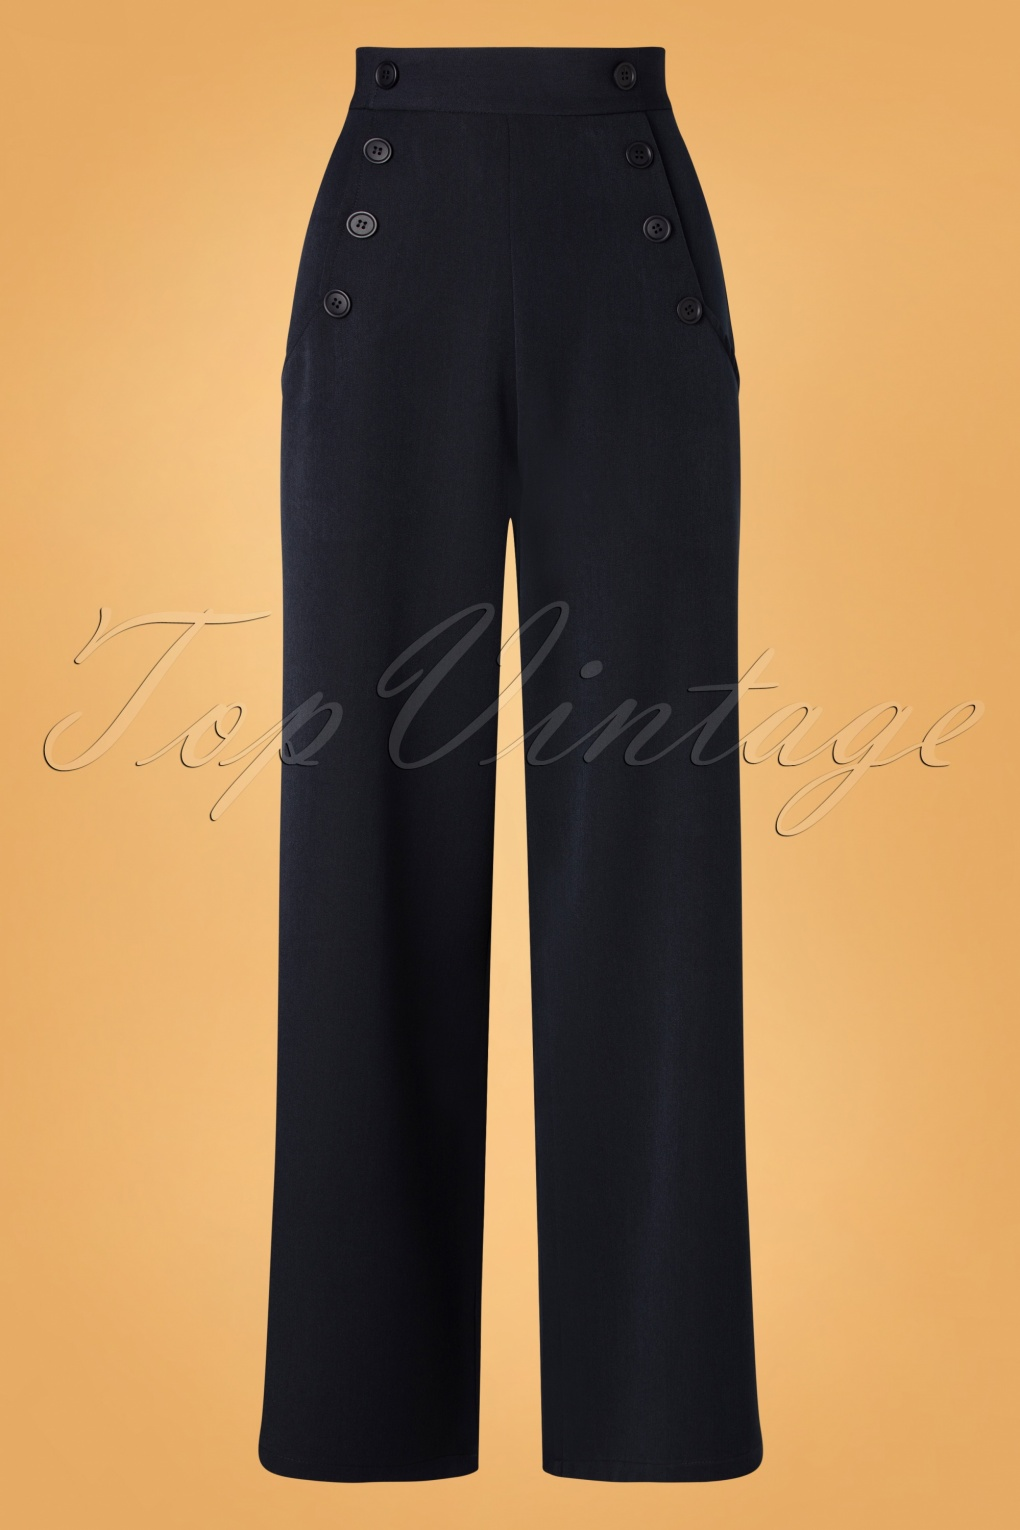 1930s Wide Leg Pants and Beach Pajamas 40s Carlie Swing Trousers in Navy £51.01 AT vintagedancer.com